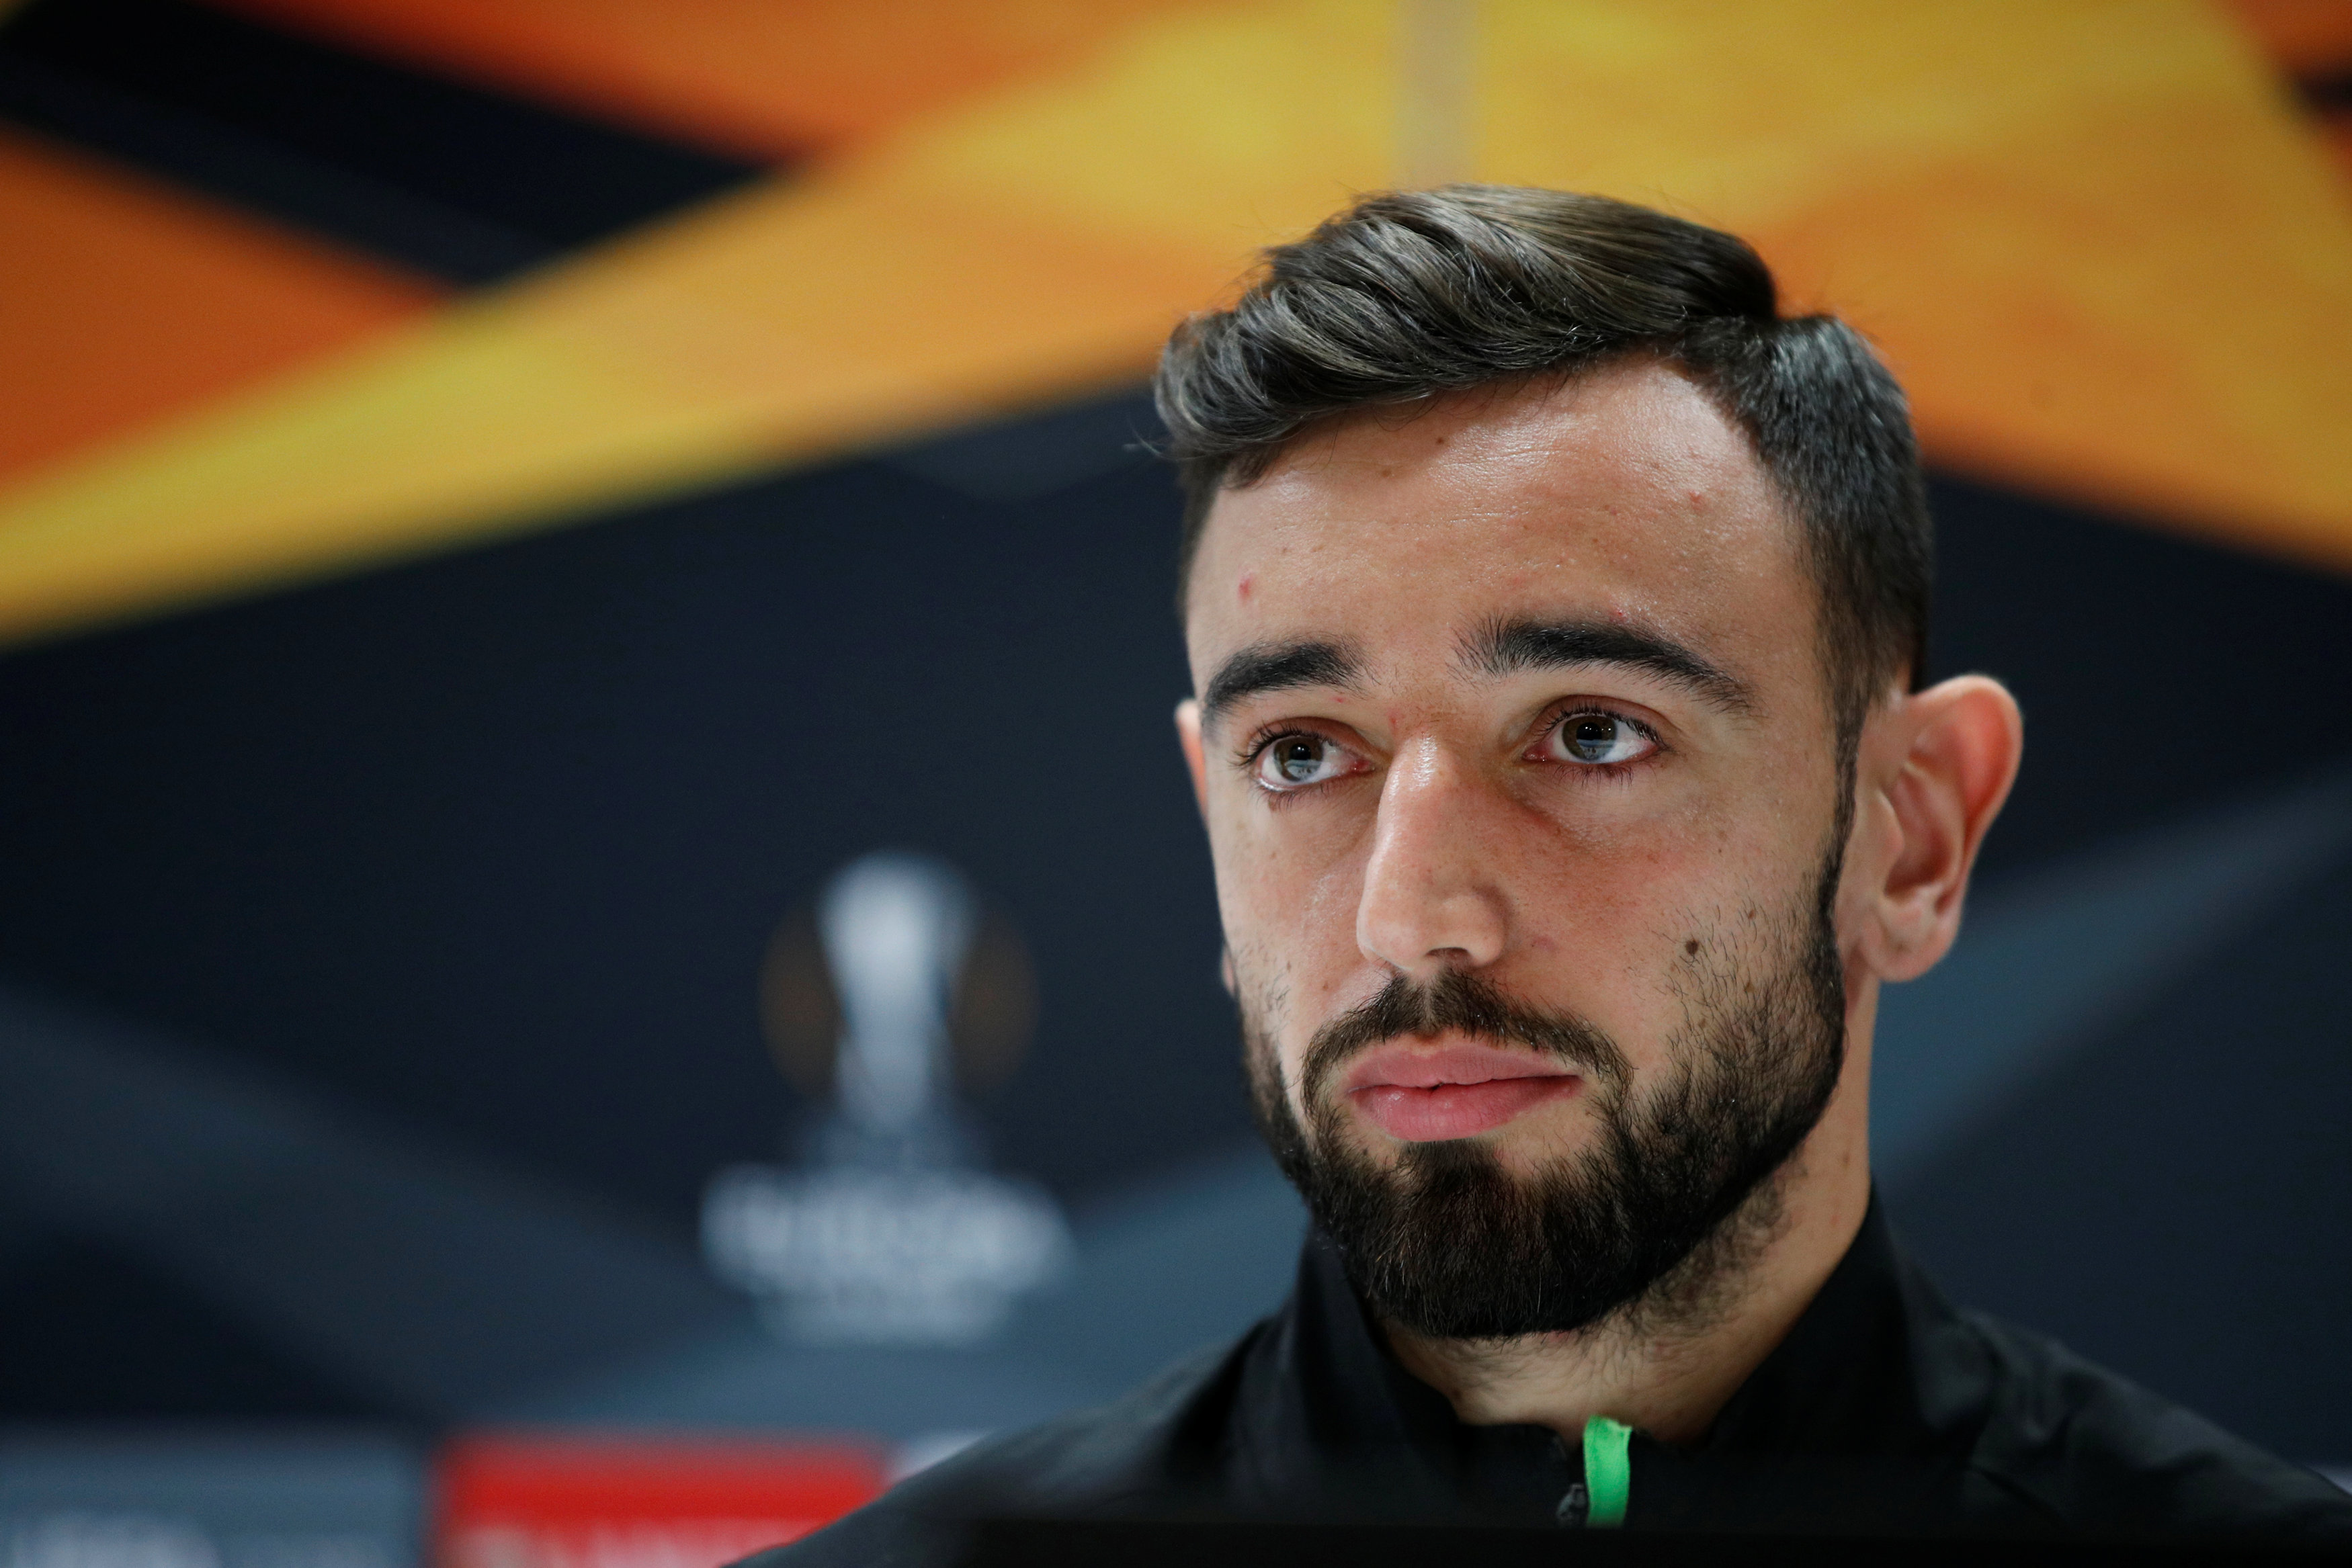 Real Madrid ready to sign long-time tagret Bruno Fernandes in January